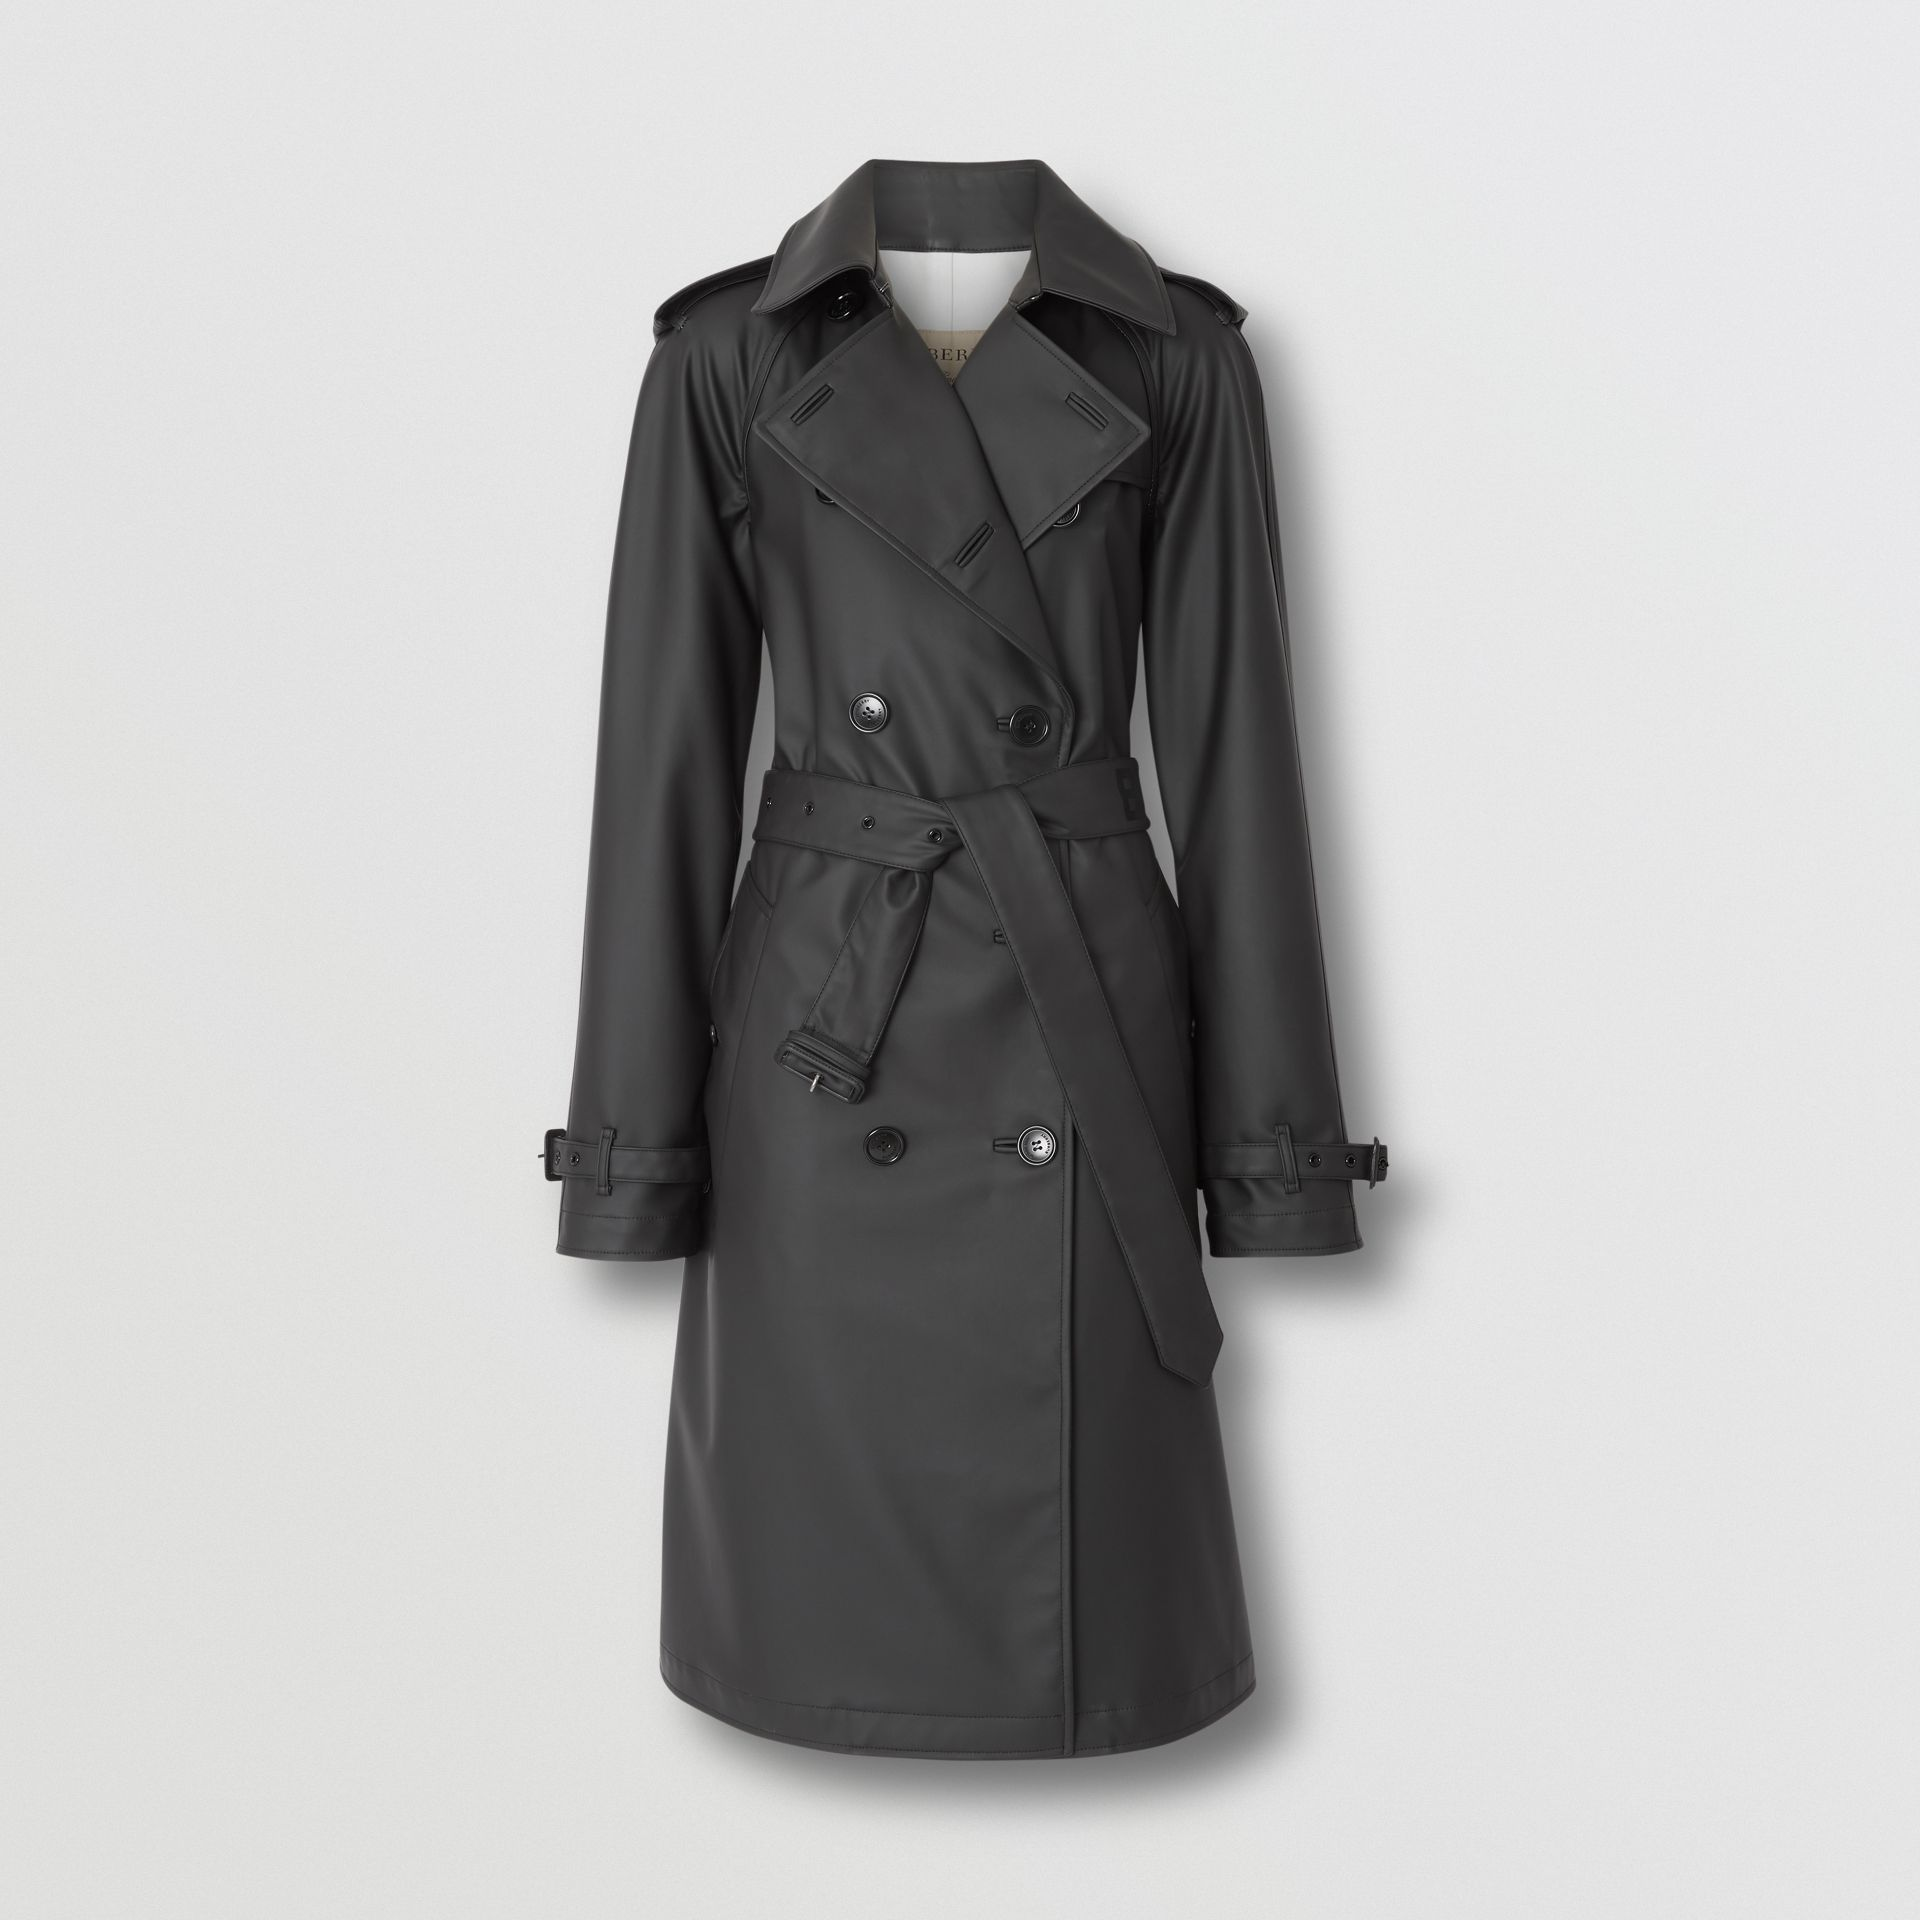 Logo Detail Showerproof Trench Coat in Black/white - Women | Burberry - gallery image 3